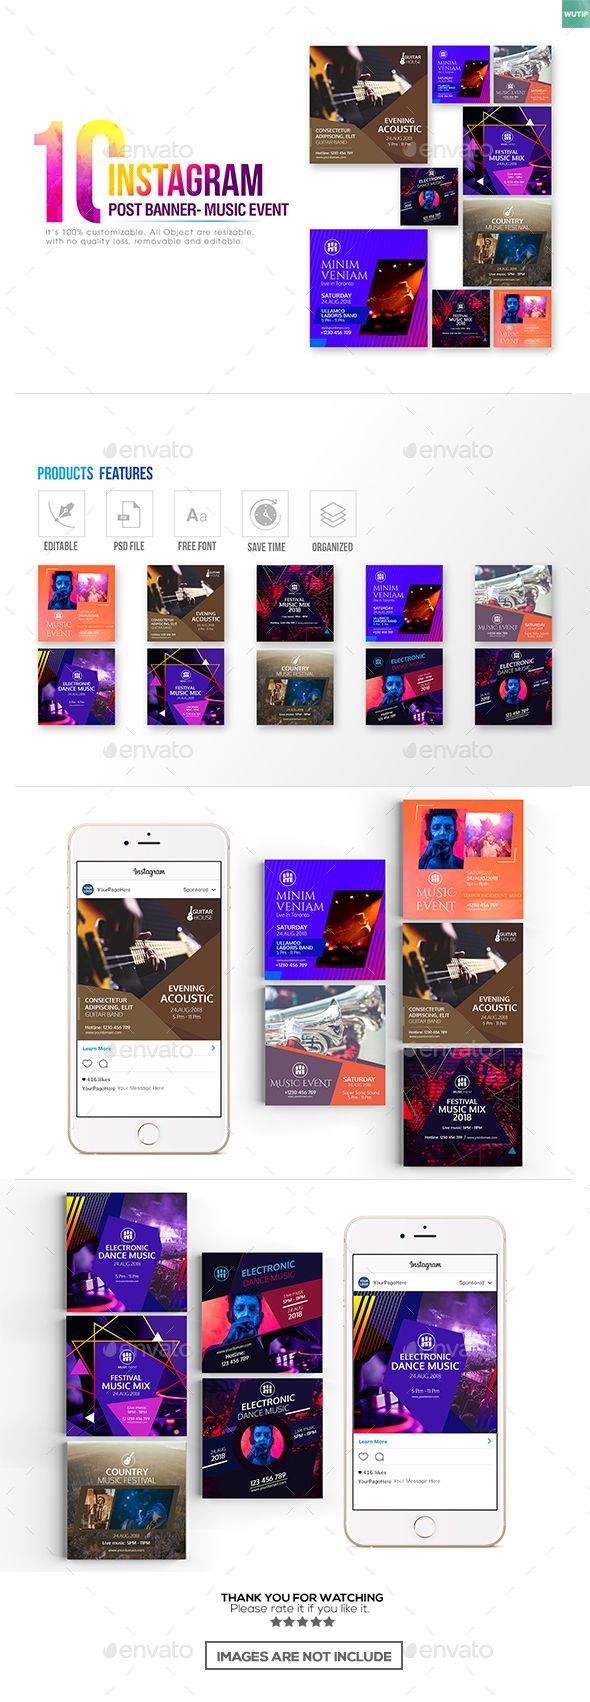 10 Instagram Post Banner - Music Event - Banners & Ads Web Elements Download here : https://graphicriver.net/item/10-instagram-post-banner-music-event/19776395?s_rank=122&ref=Al-fatih